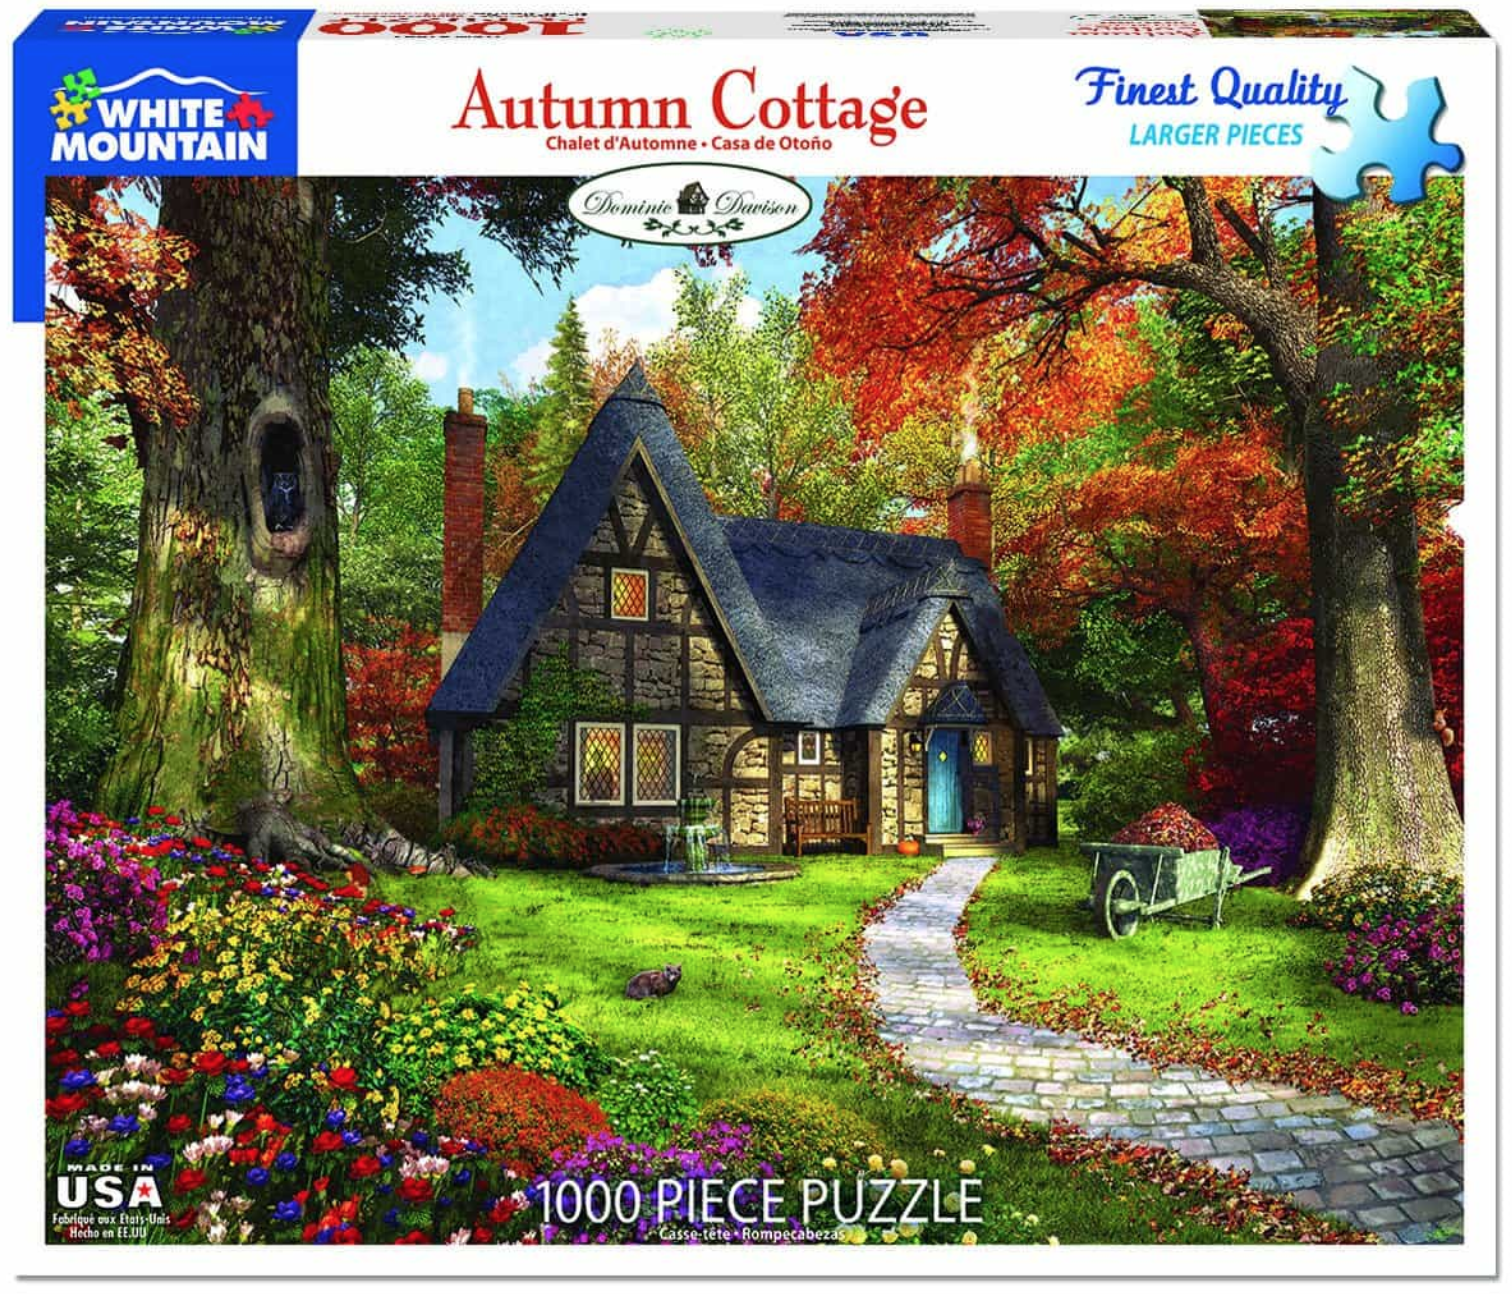 Autumn Cottage 1000 Piece Jigsaw Puzzle by White Mountain Puzzles